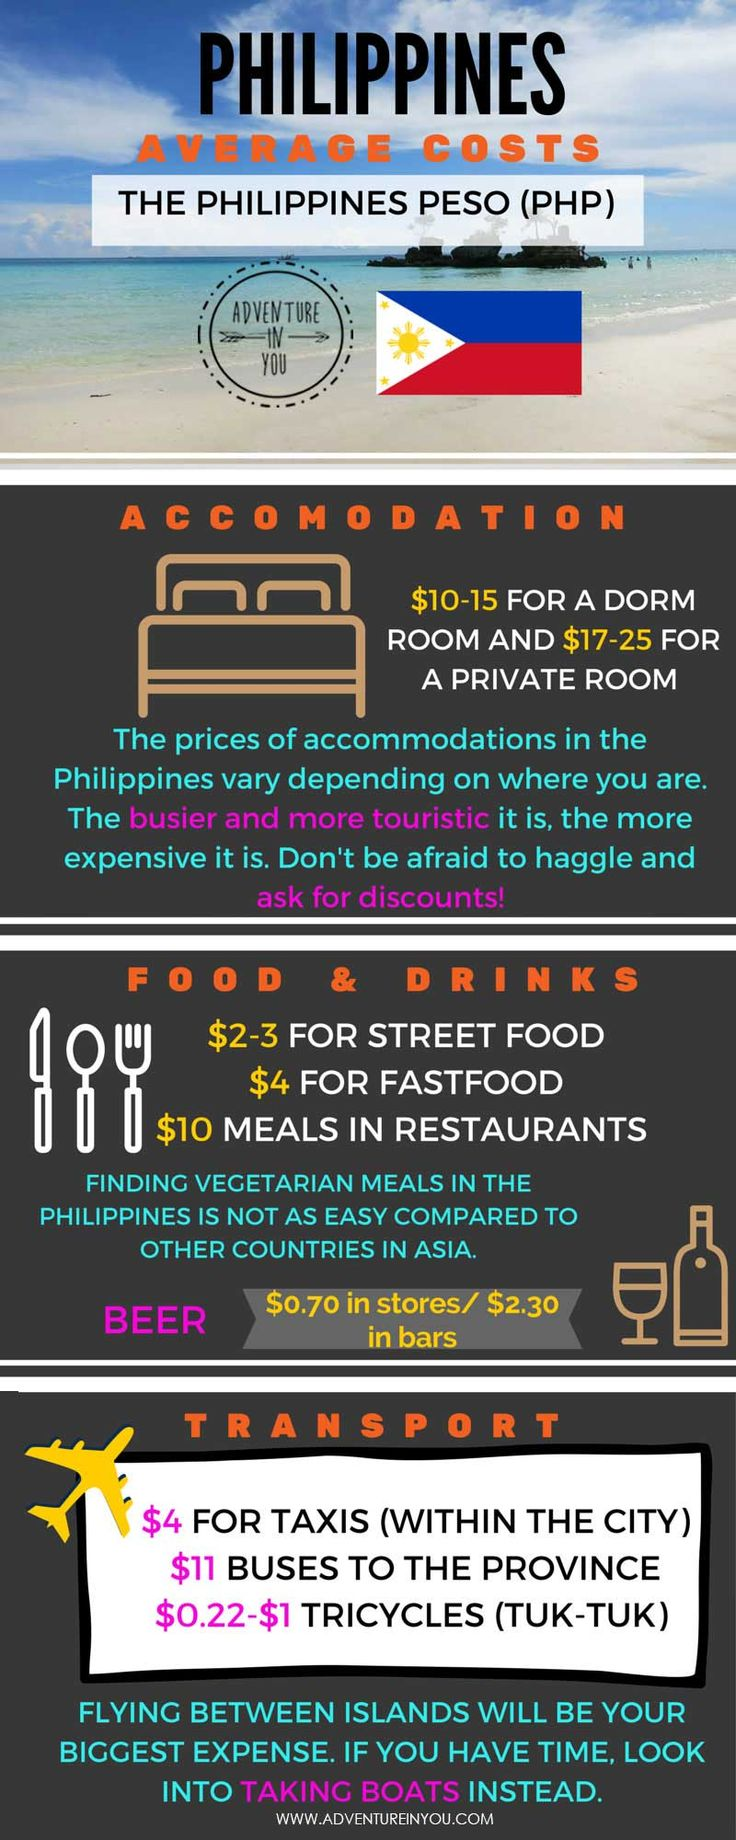 A Quick Travel Guide to the Philippines